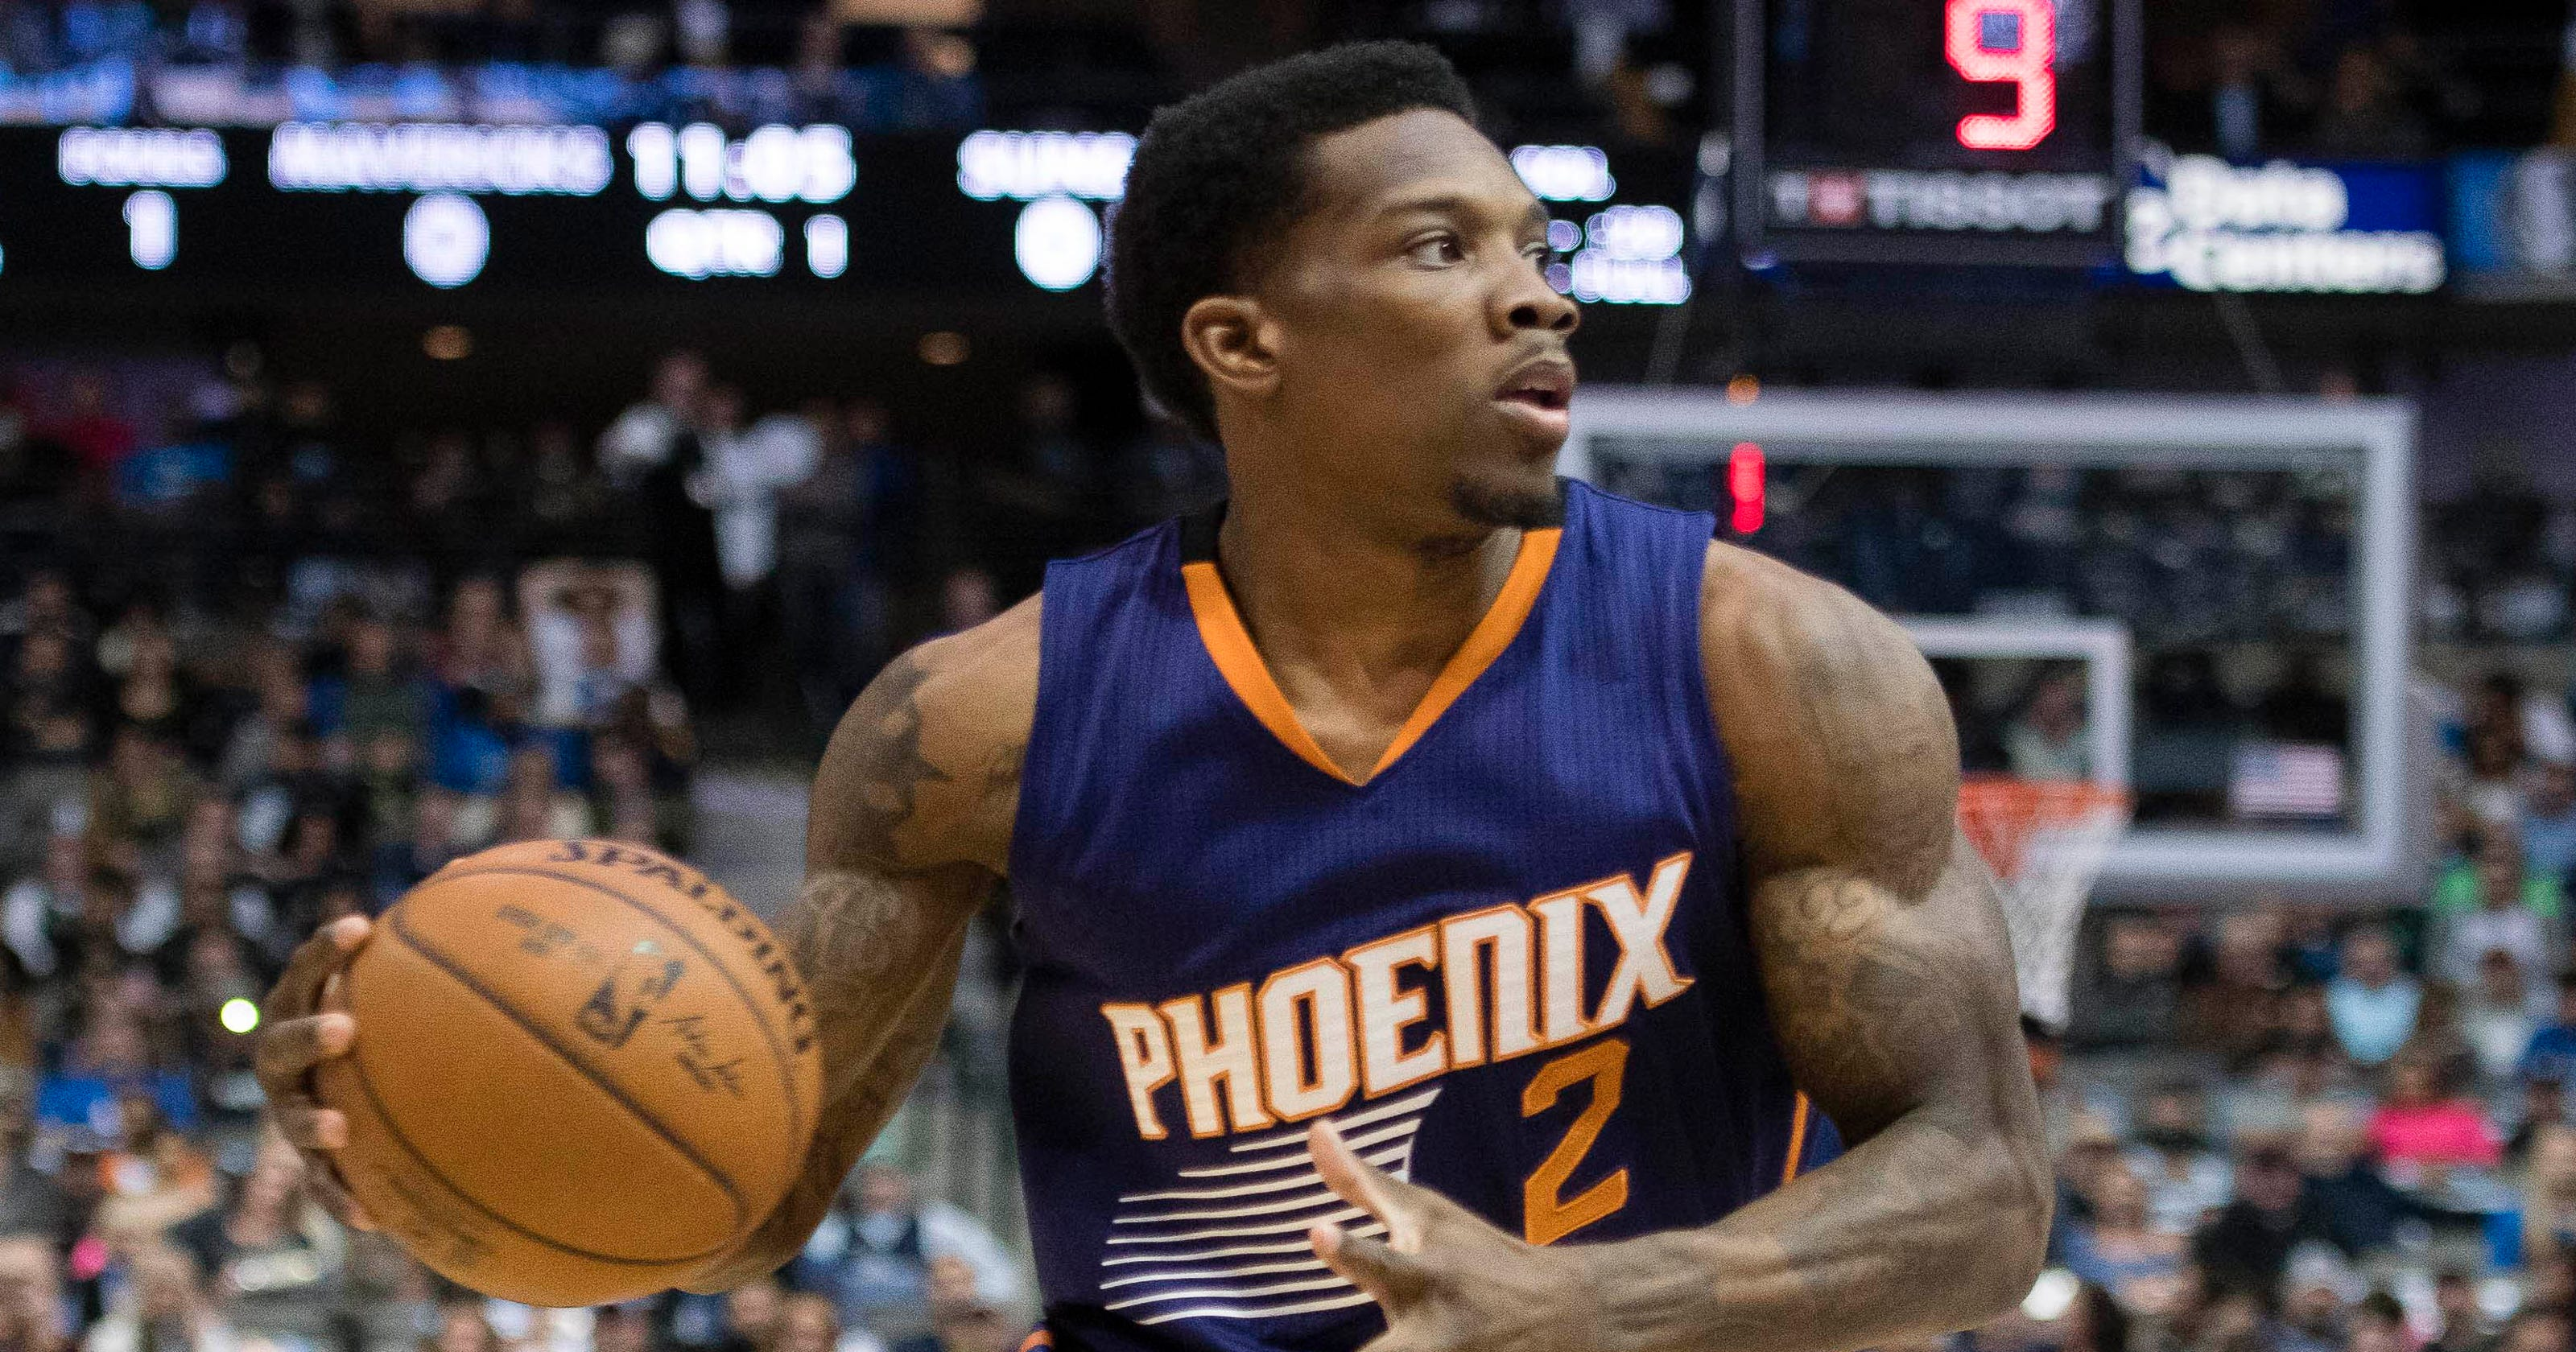 e39eac34fe46 Phoenix Suns point guard Eric Bledsoe finishing strong